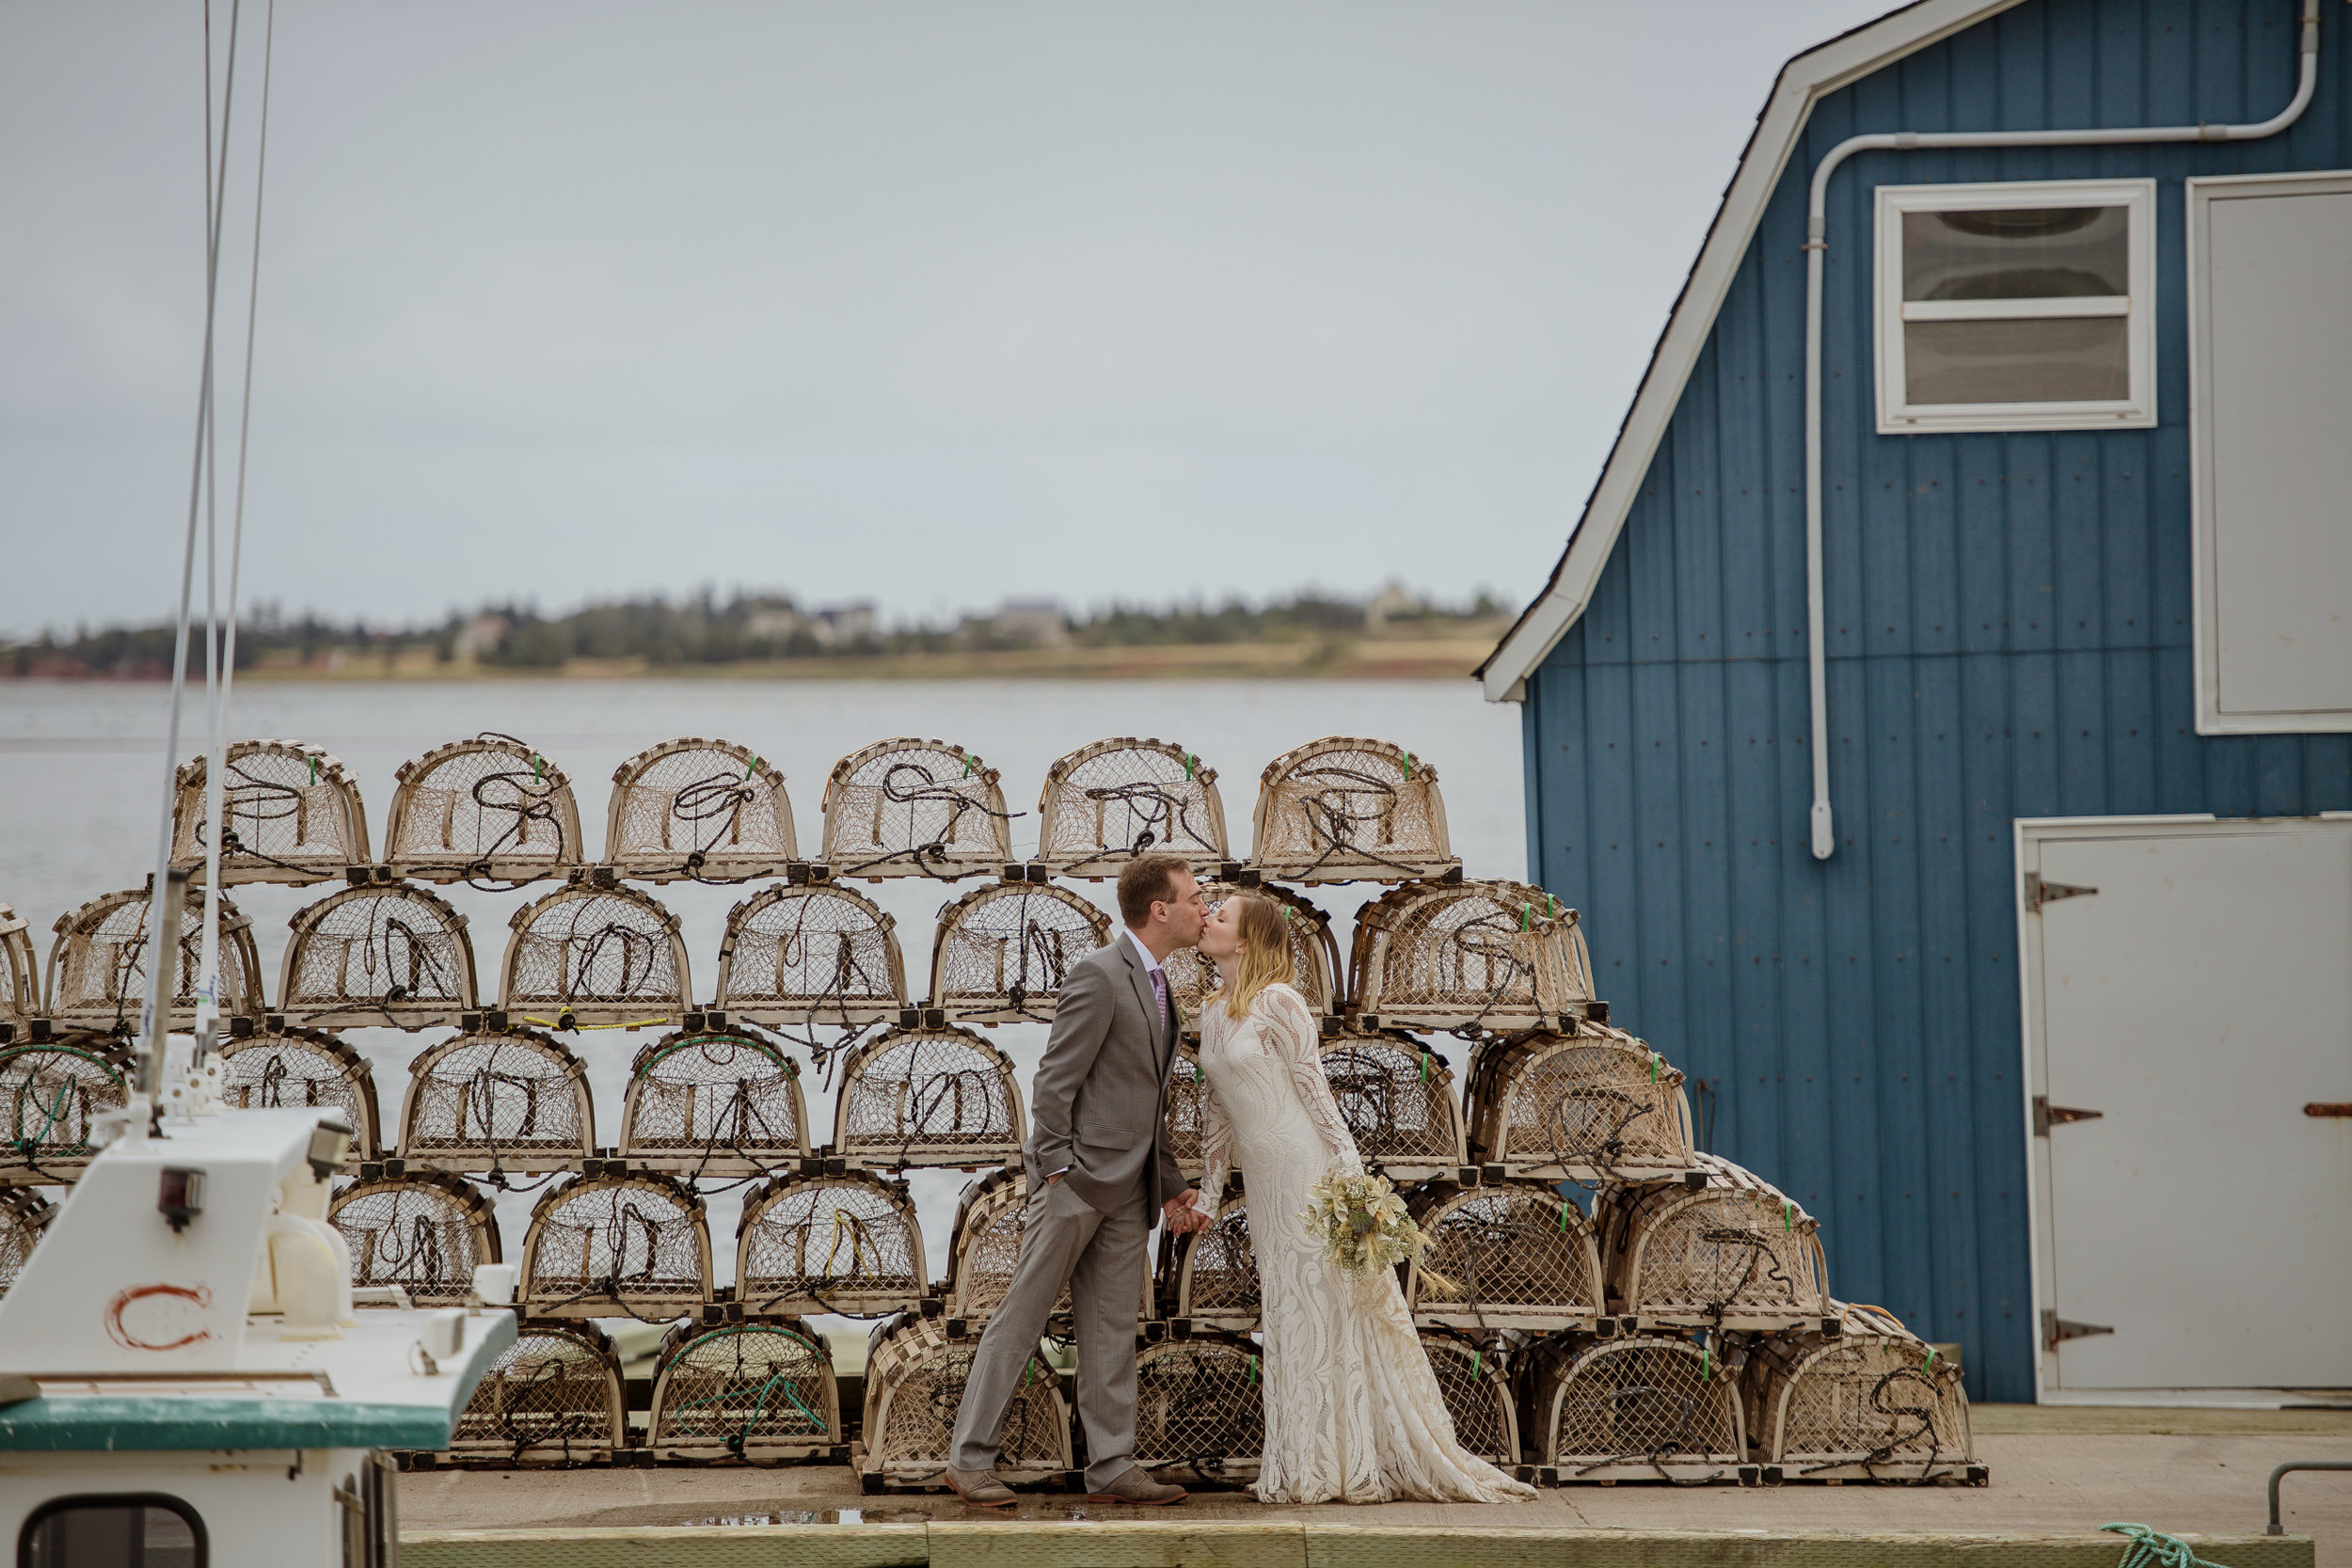 A Prince Edward Island Nova Scotia Wedding - The Overwhelmed Bride Wedding Blog